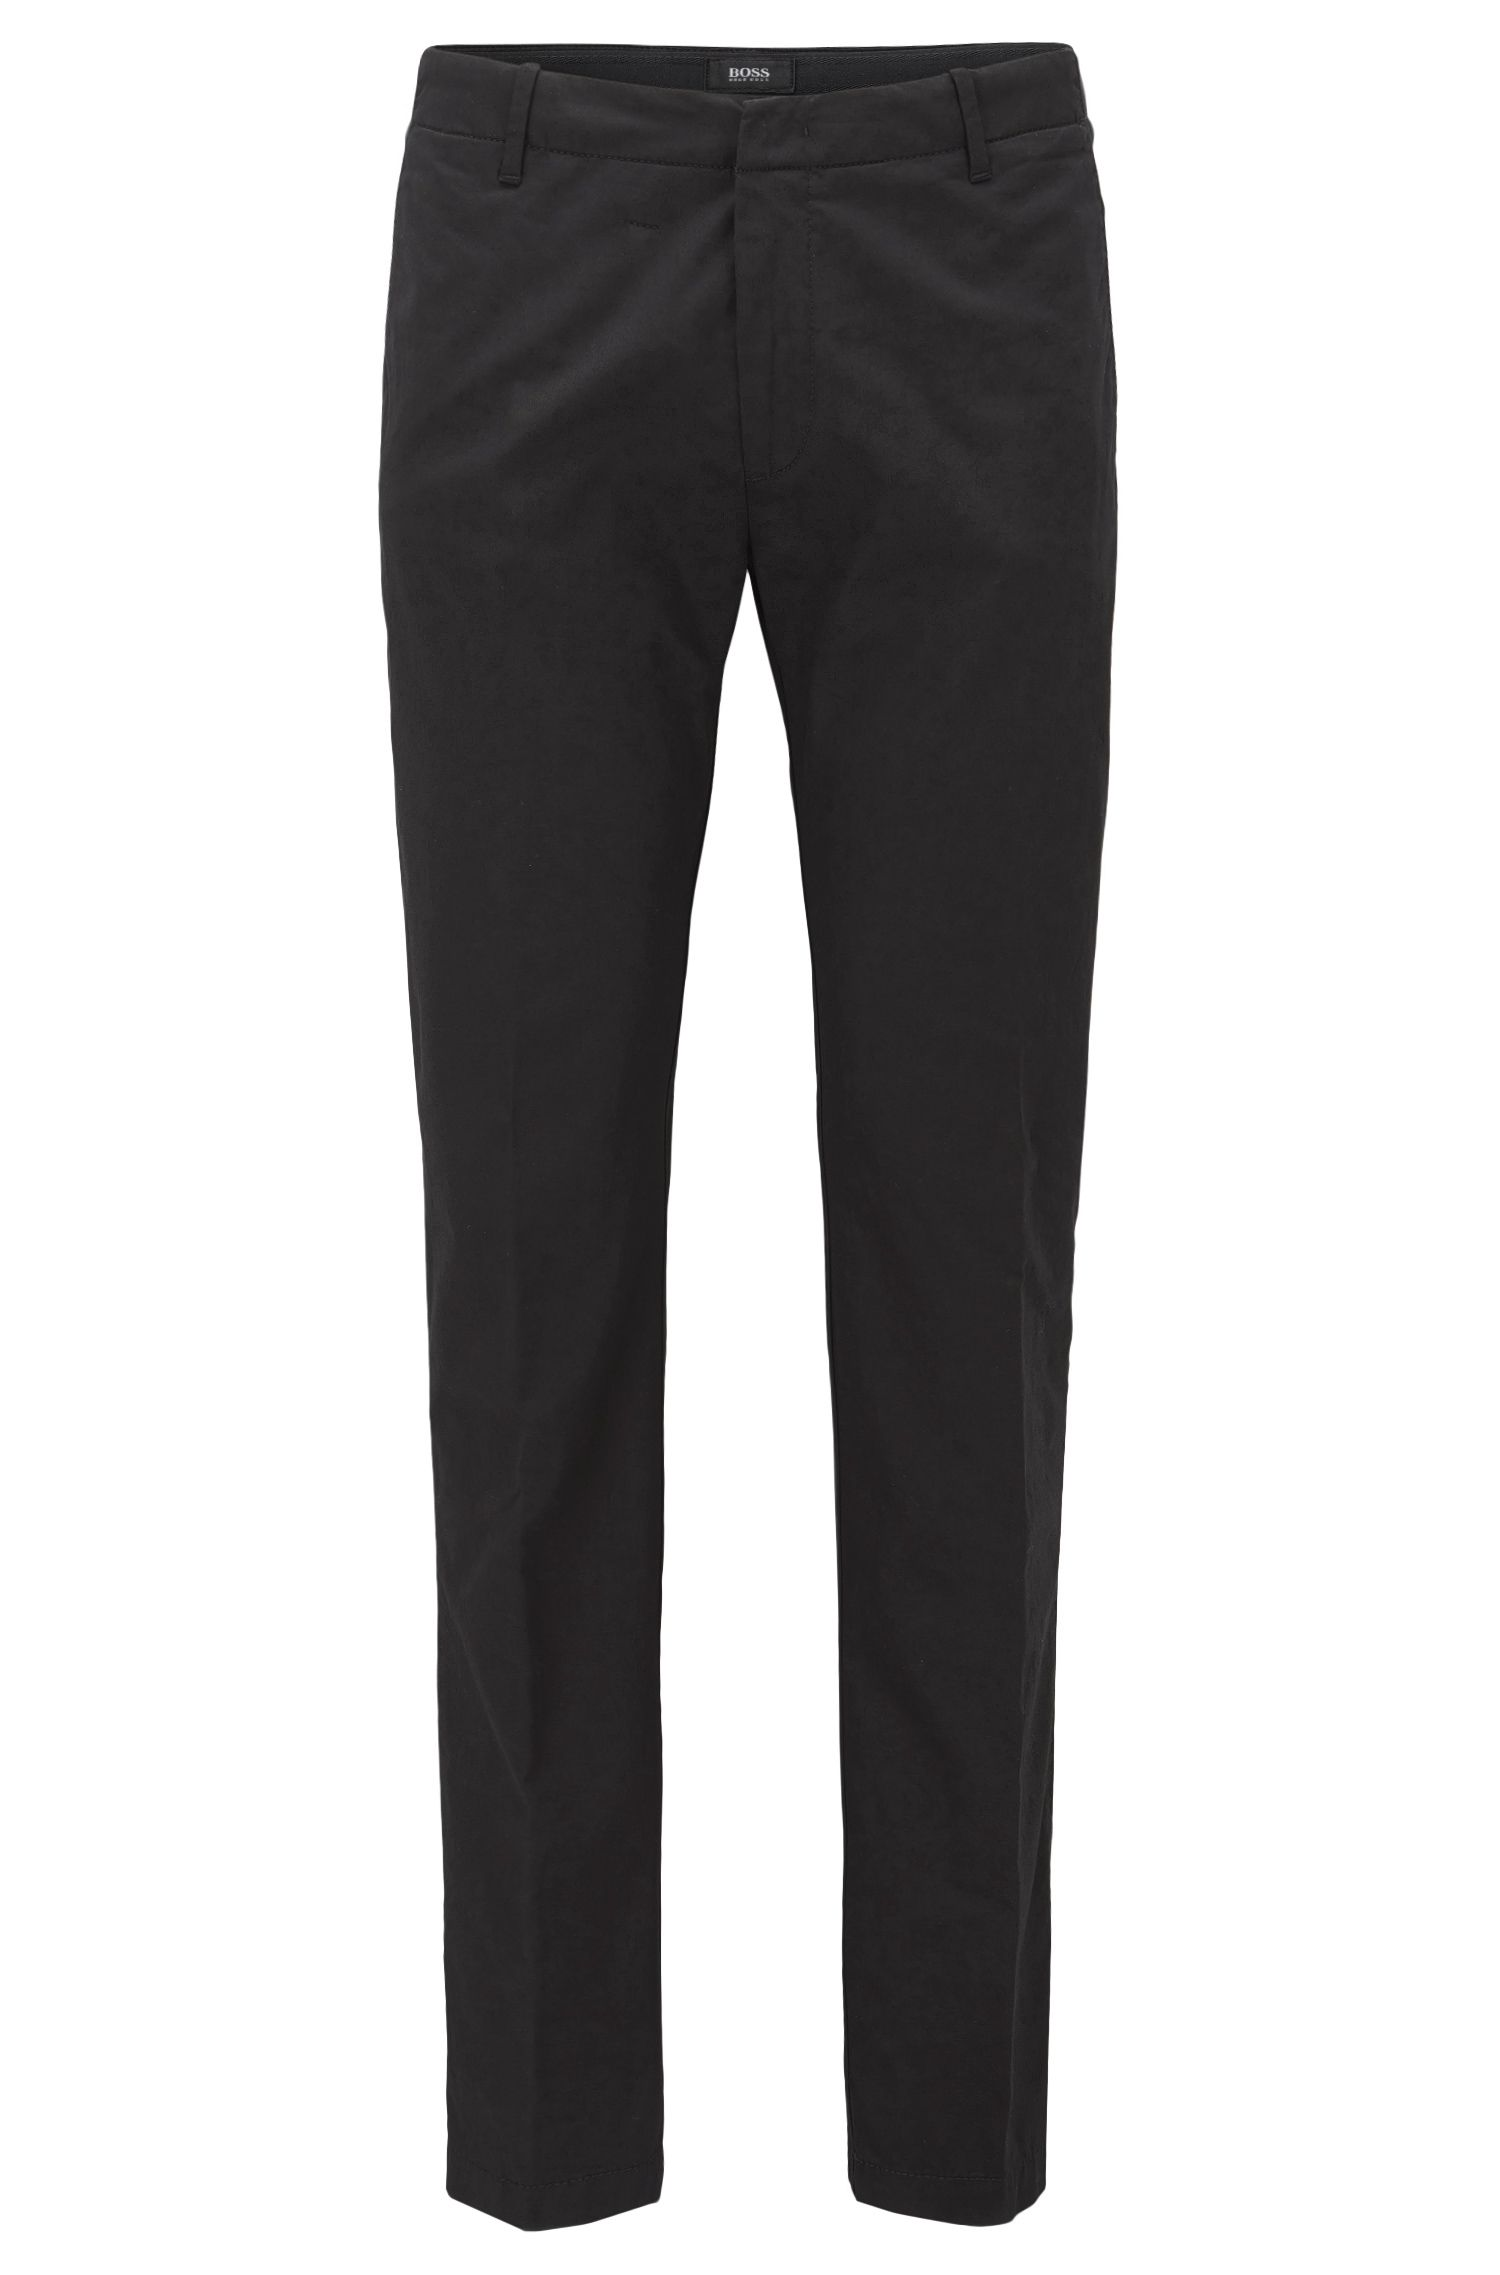 Mercedes-Benz Stretch Cotton Pants, Regular Fit | Rice MB W